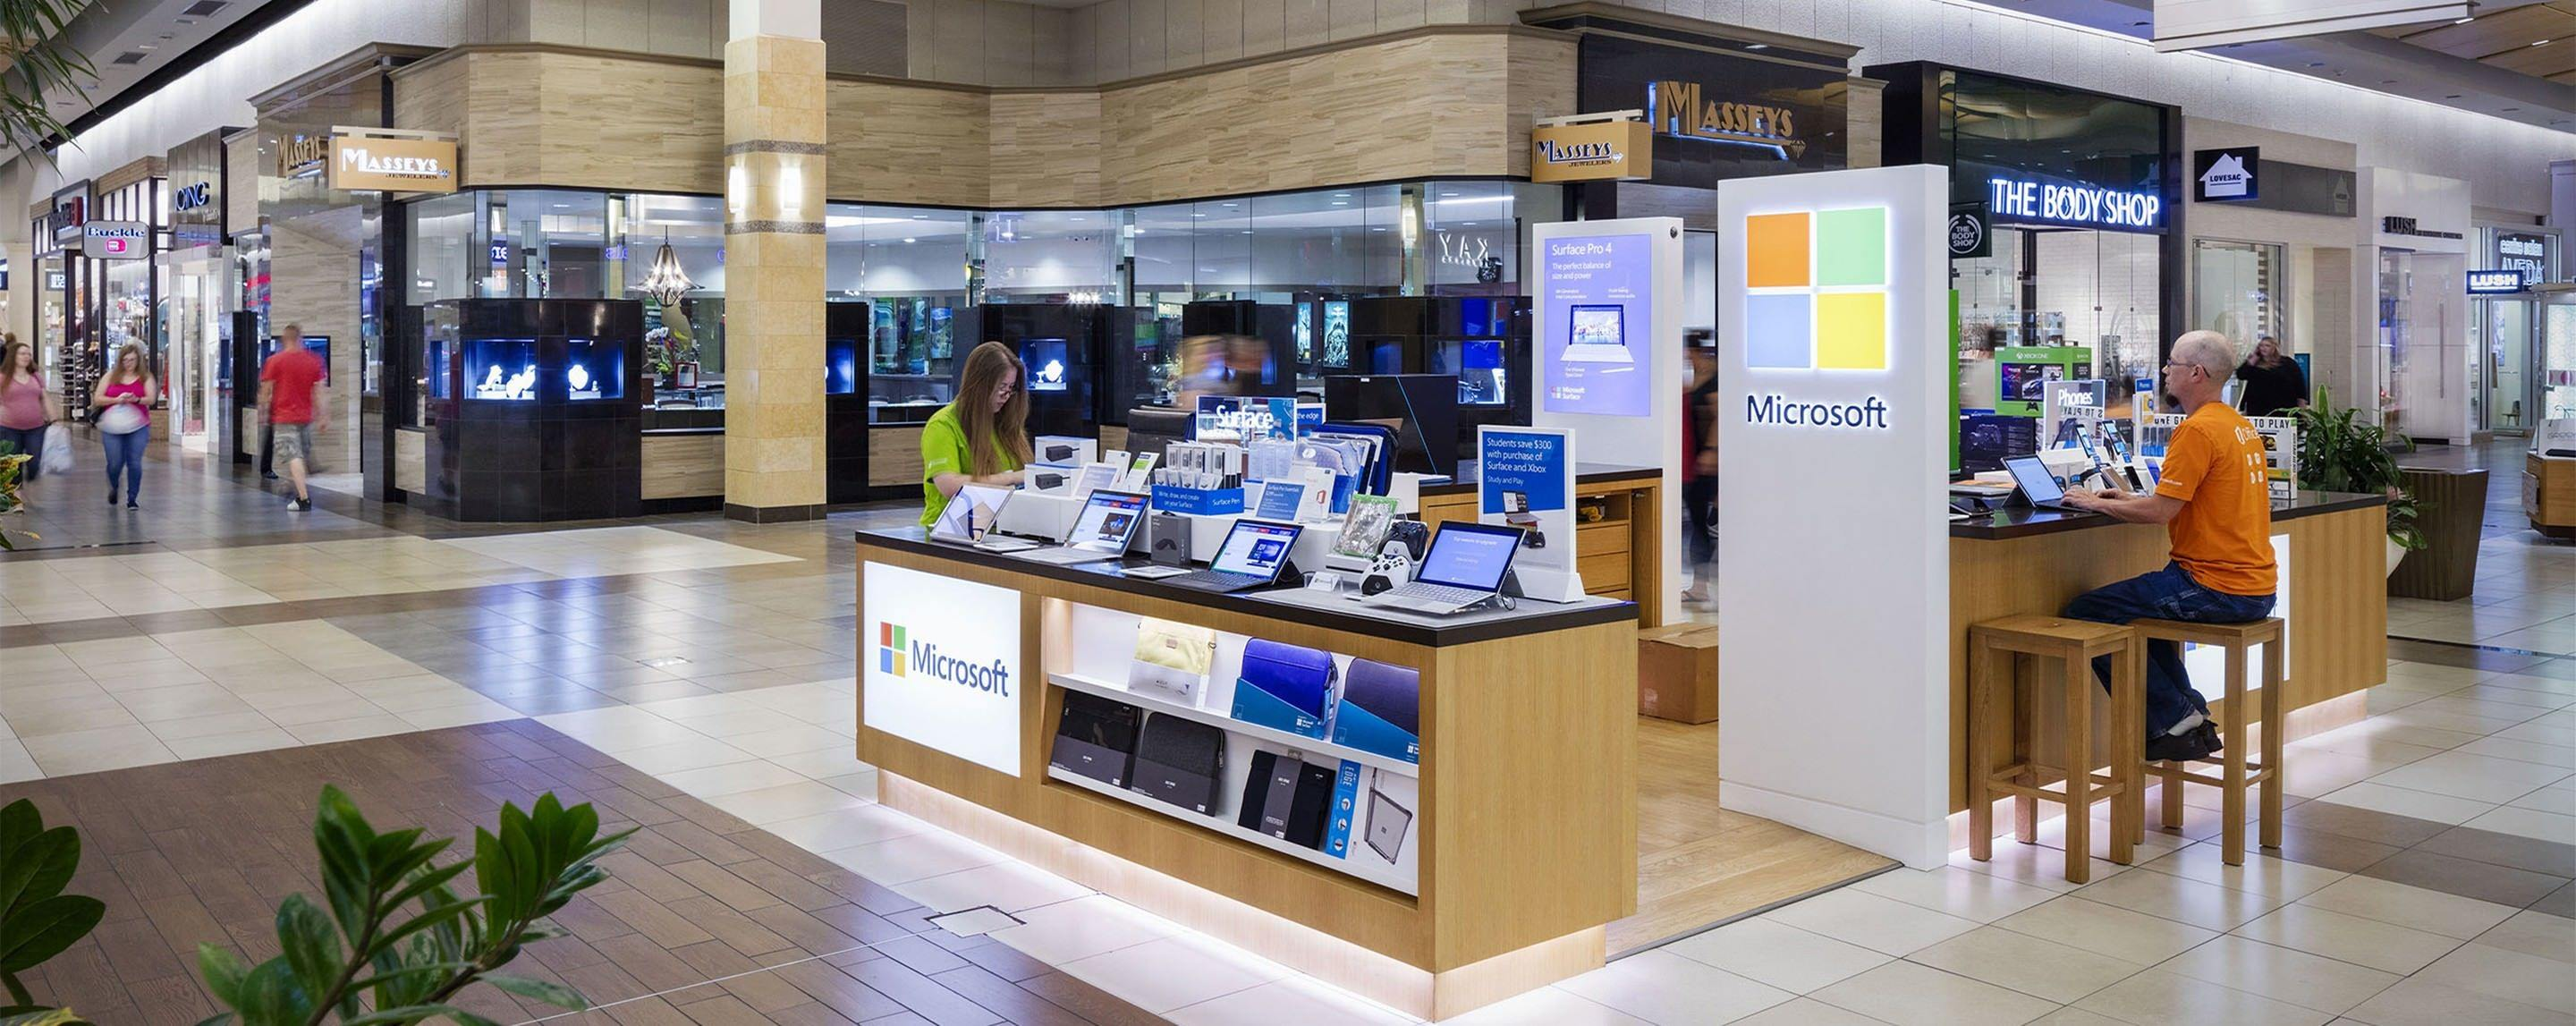 In a GGP property common area, a Microsoft pop up is displayed with shoppers working with the products.